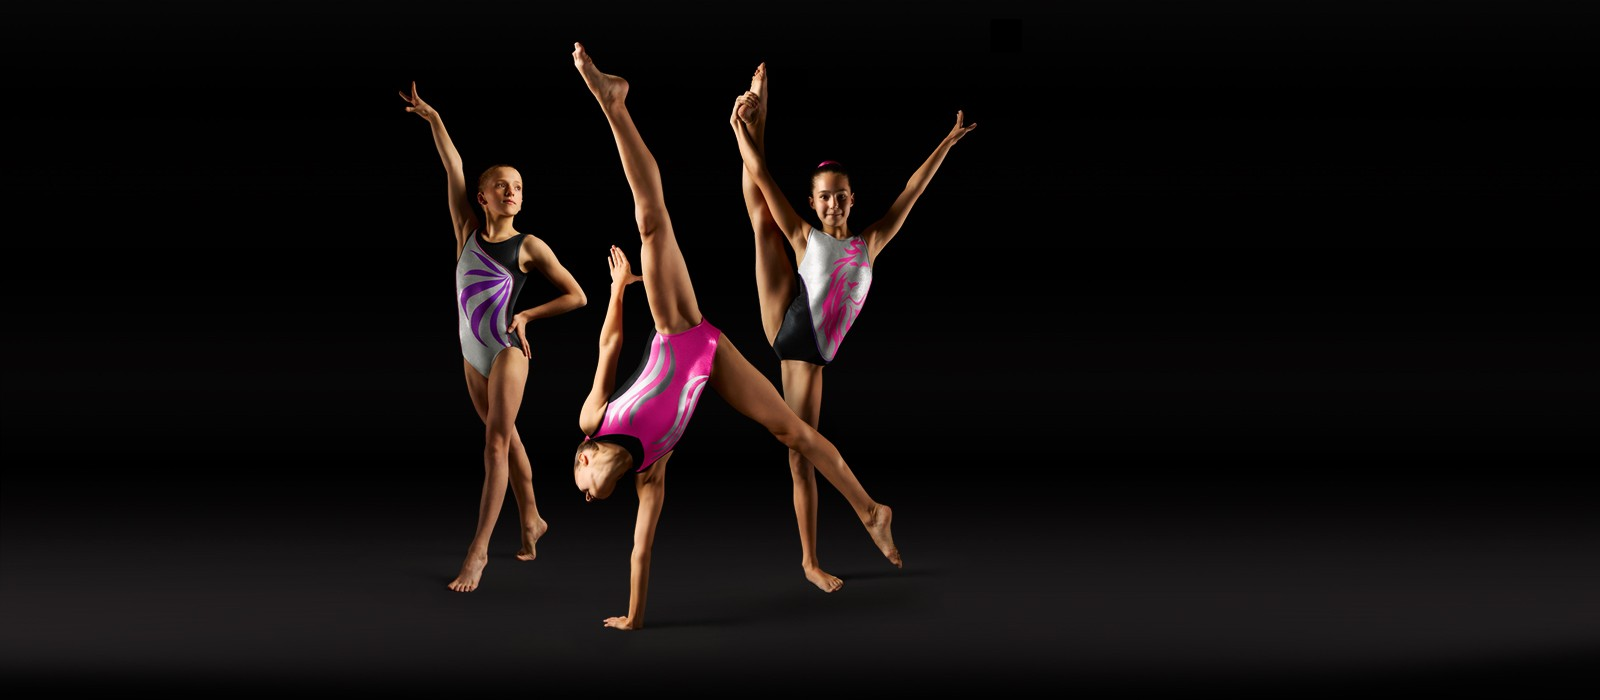 image - Perfect leotards for perfect points.